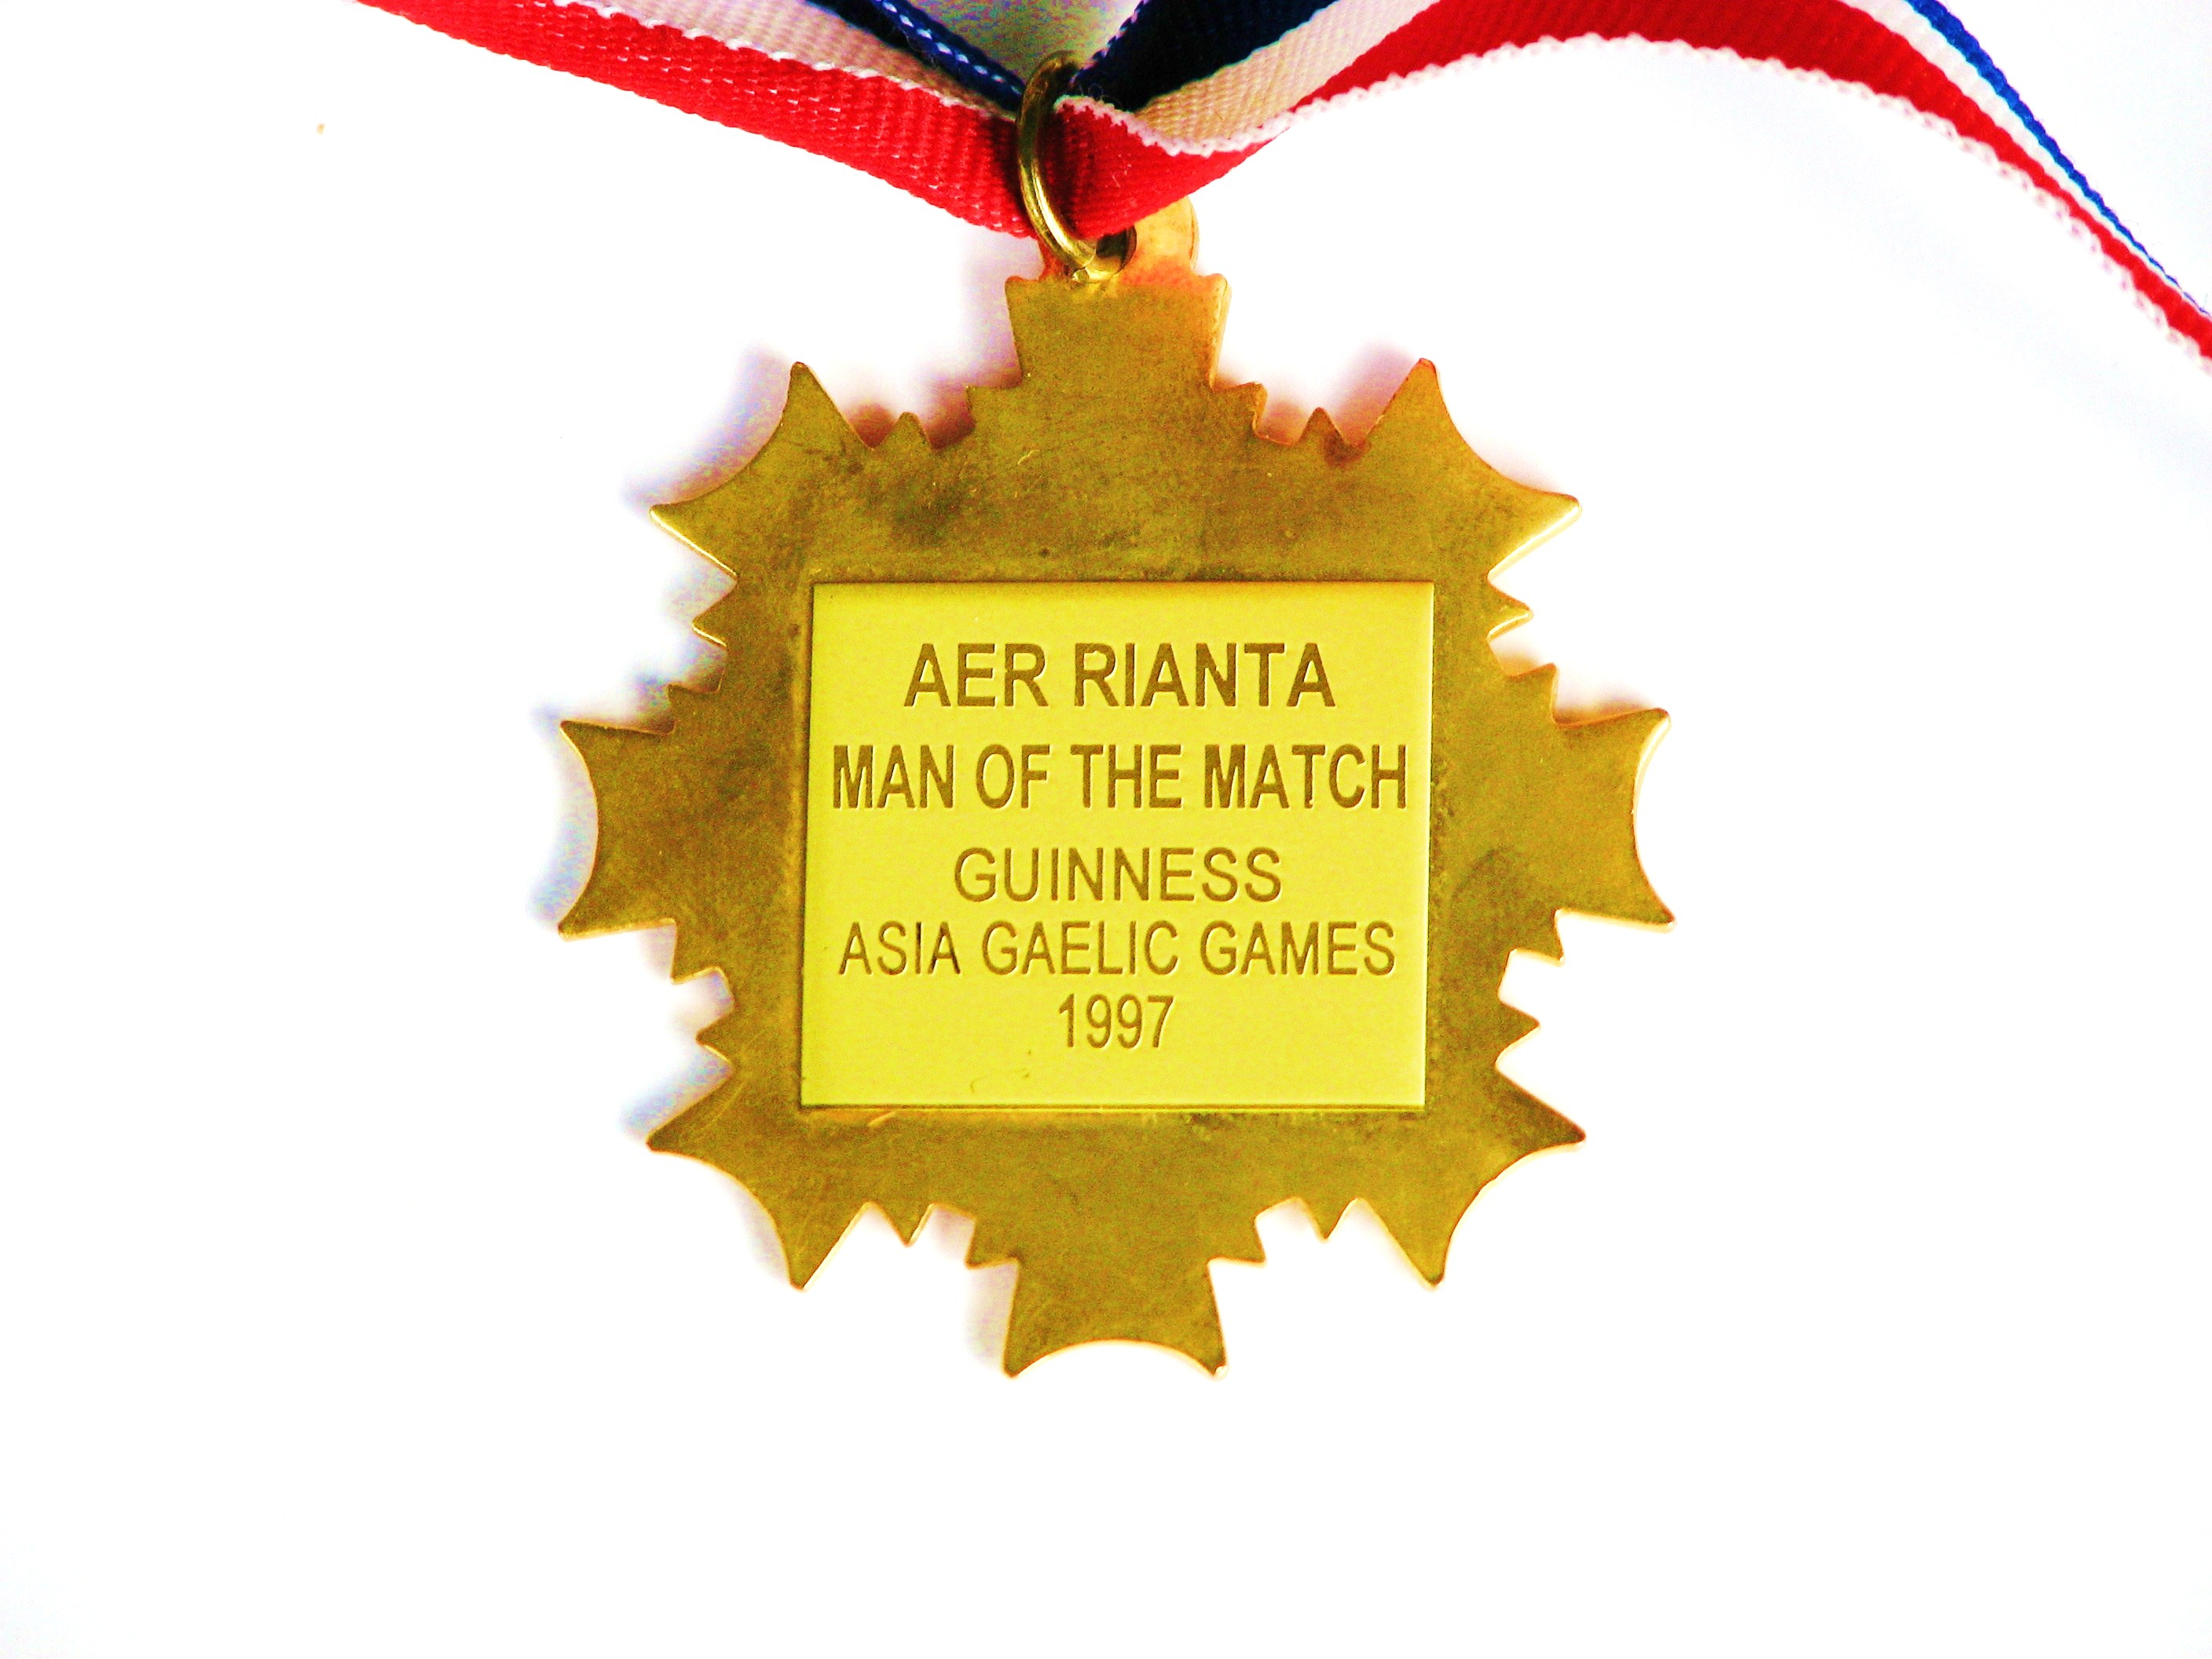 Asia Gaelic Games, Manila 1997- Korea Gaelic Football Team Kimchi Kickers - Man of the match player of tournament Medal